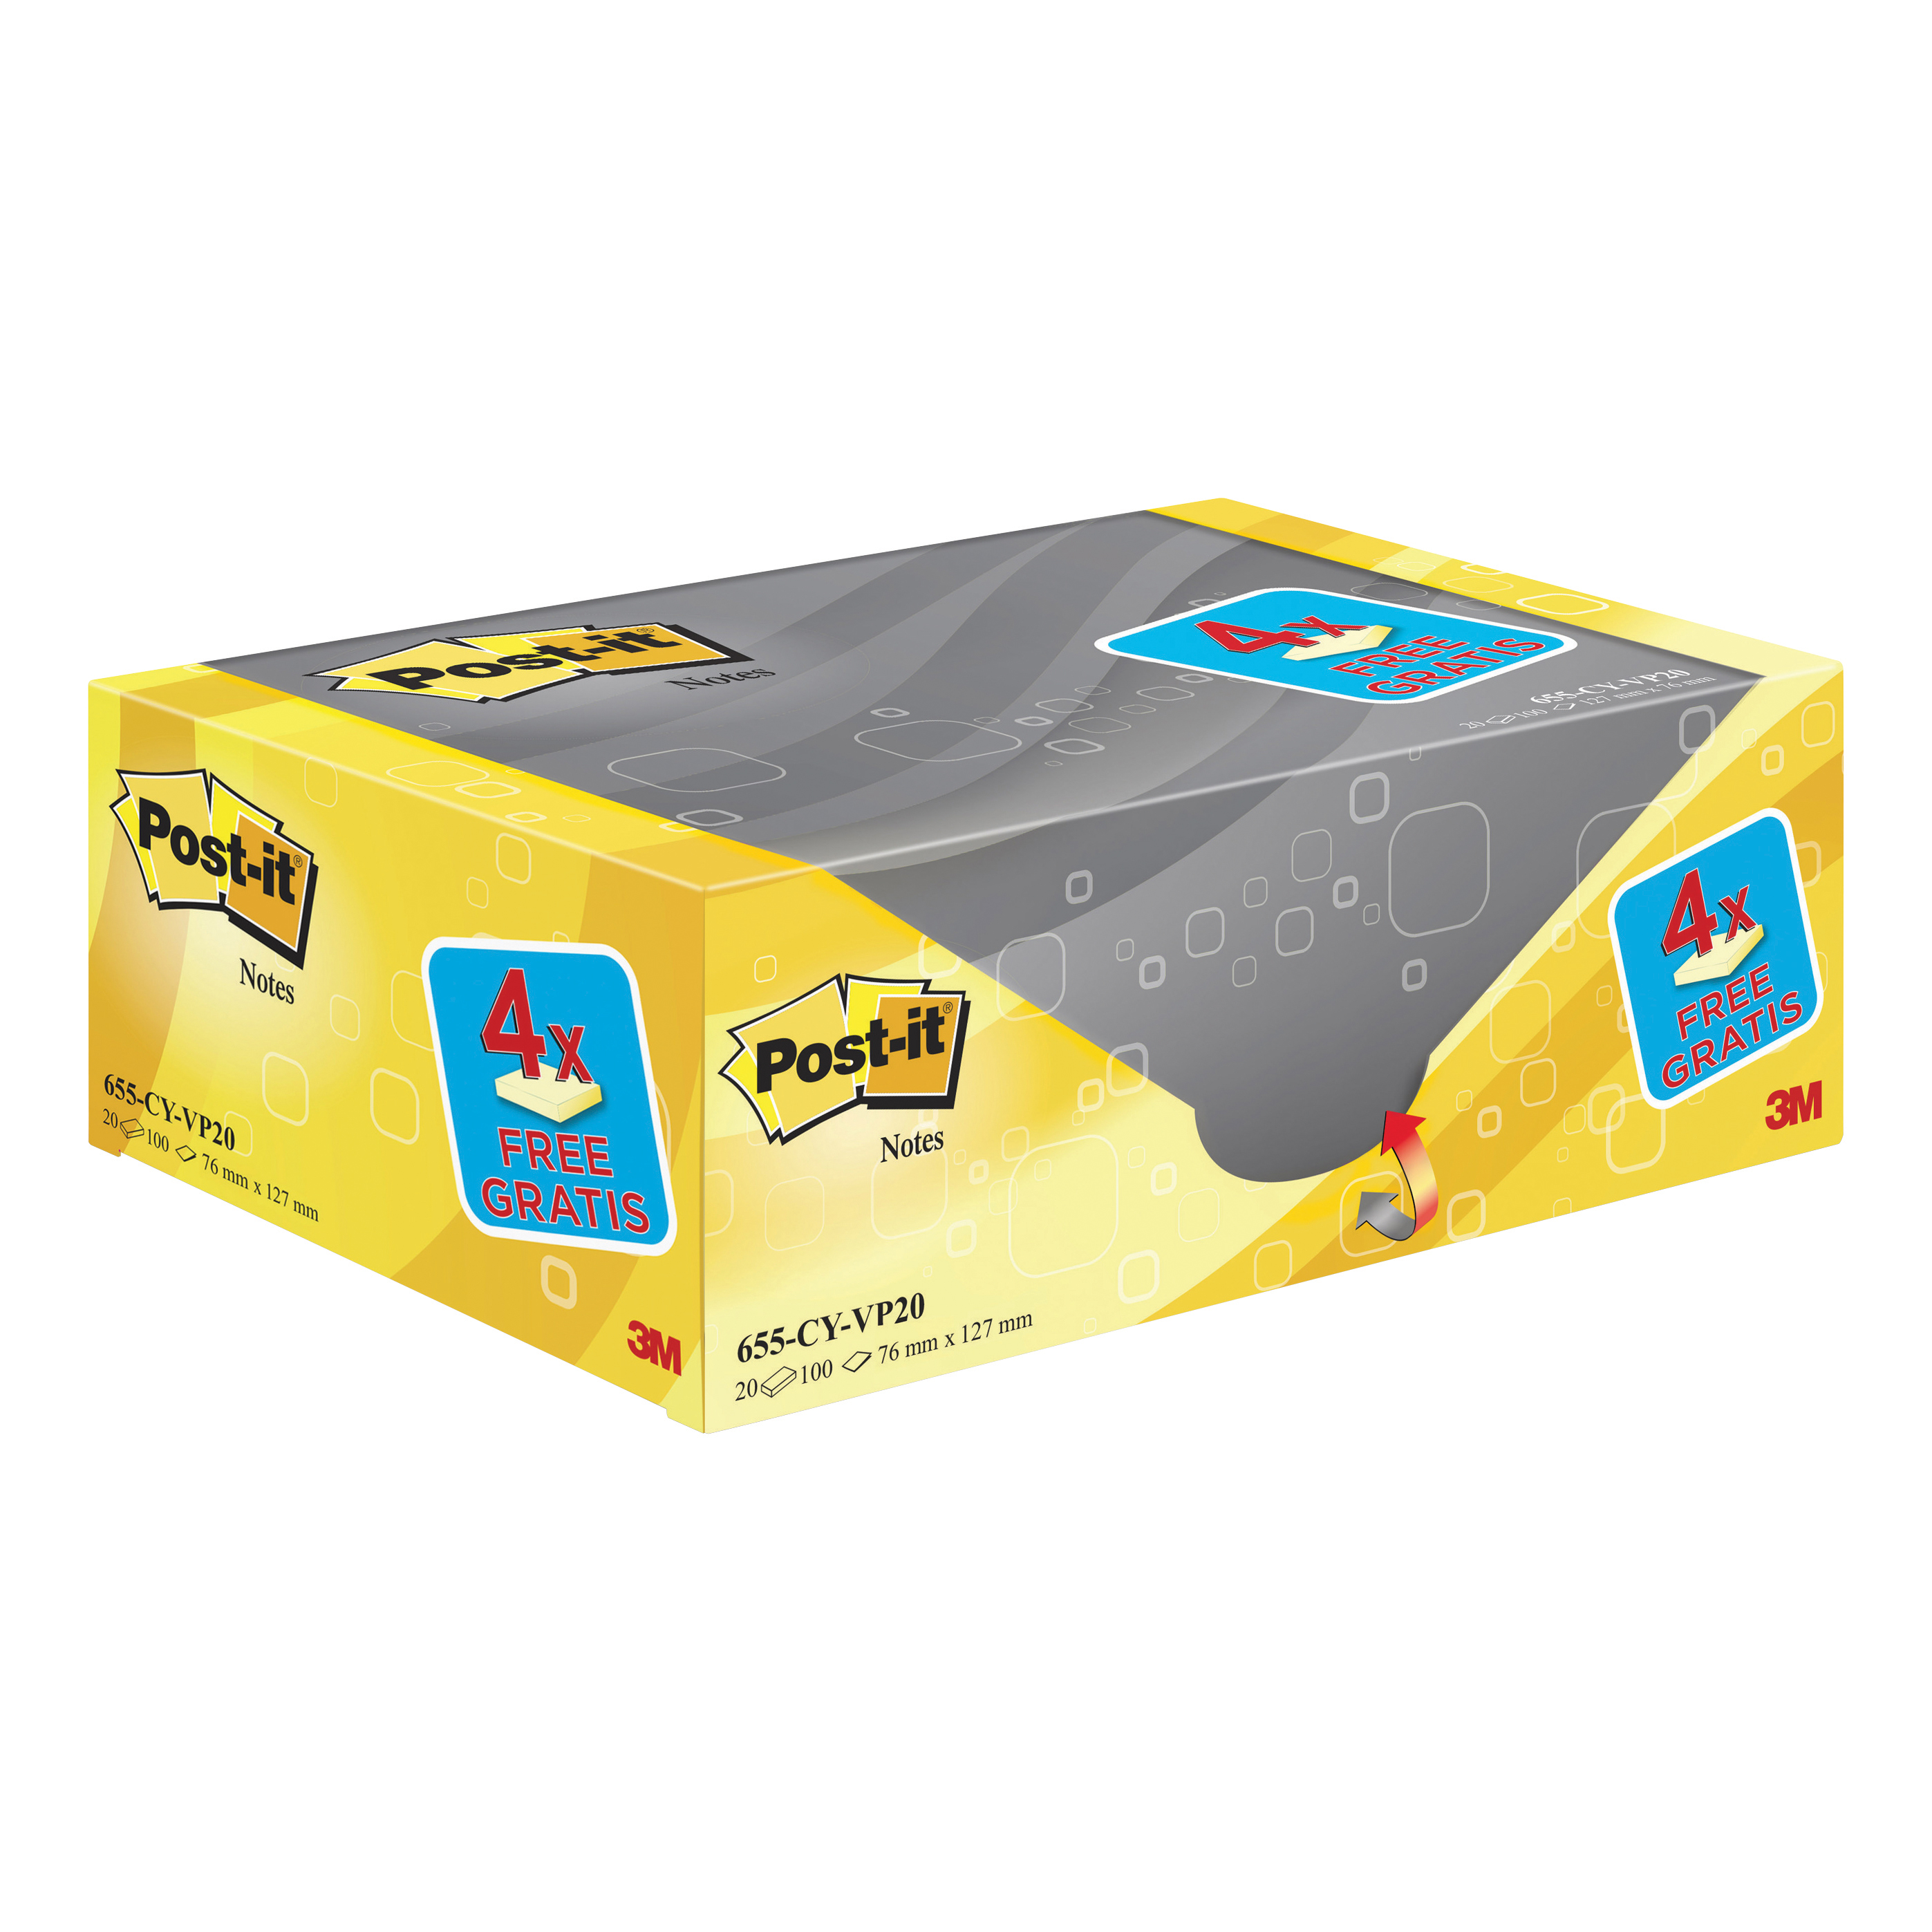 Post-it Note Value Display Pack Dispenser with Pads 76x127mm Yellow Ref 655Y-VP20 Pack 20